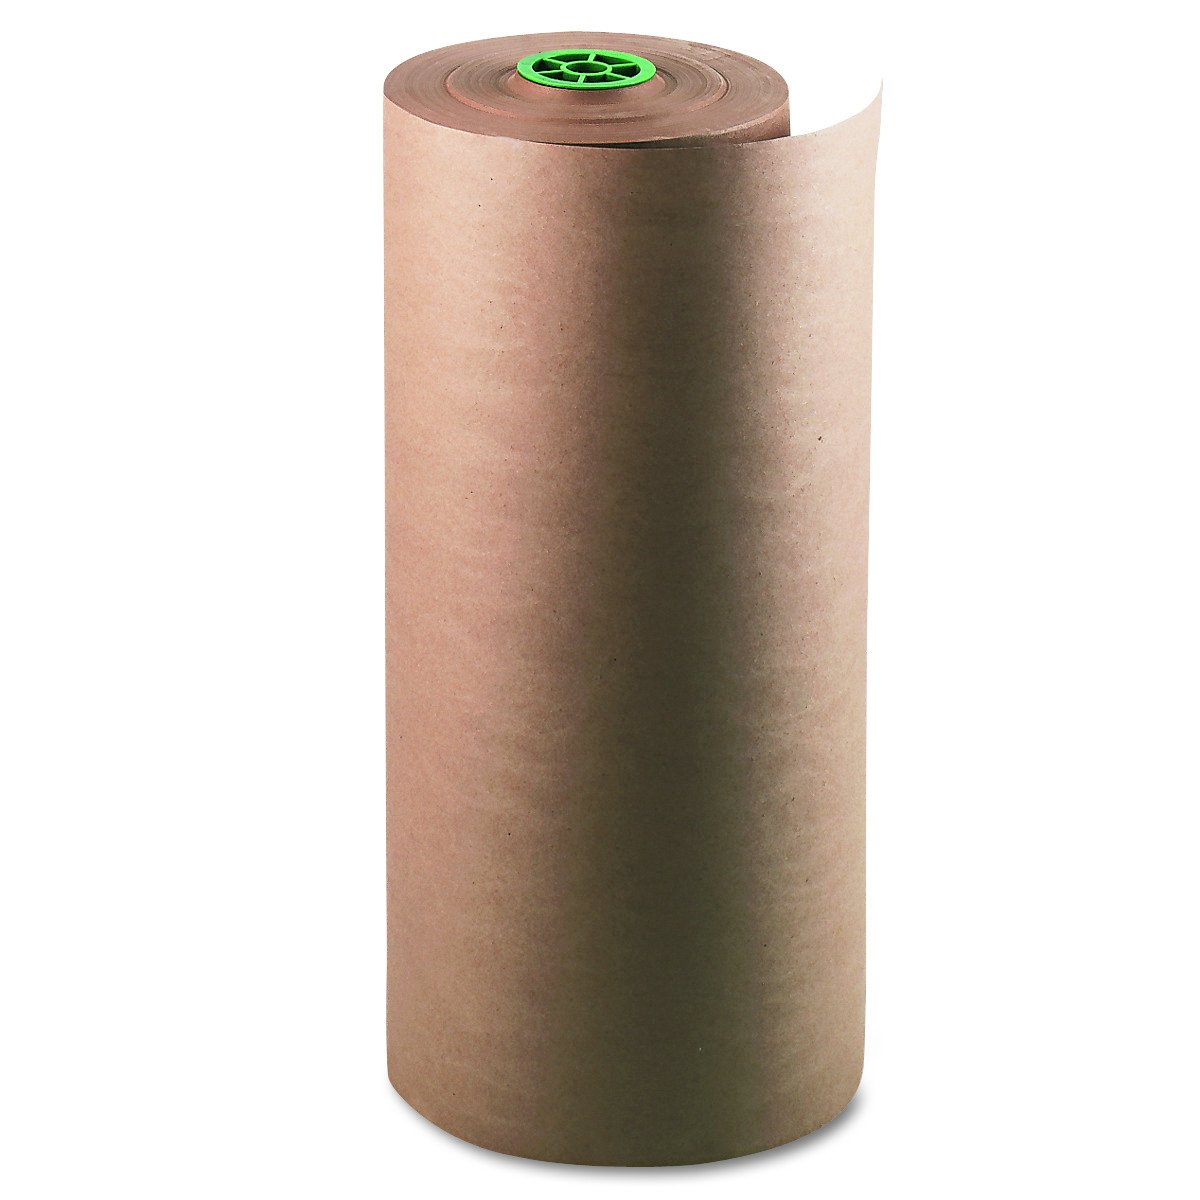 Pacon 5824 Kraft Paper Roll, 50 lbs., 24'' x 1000 ft, Natural